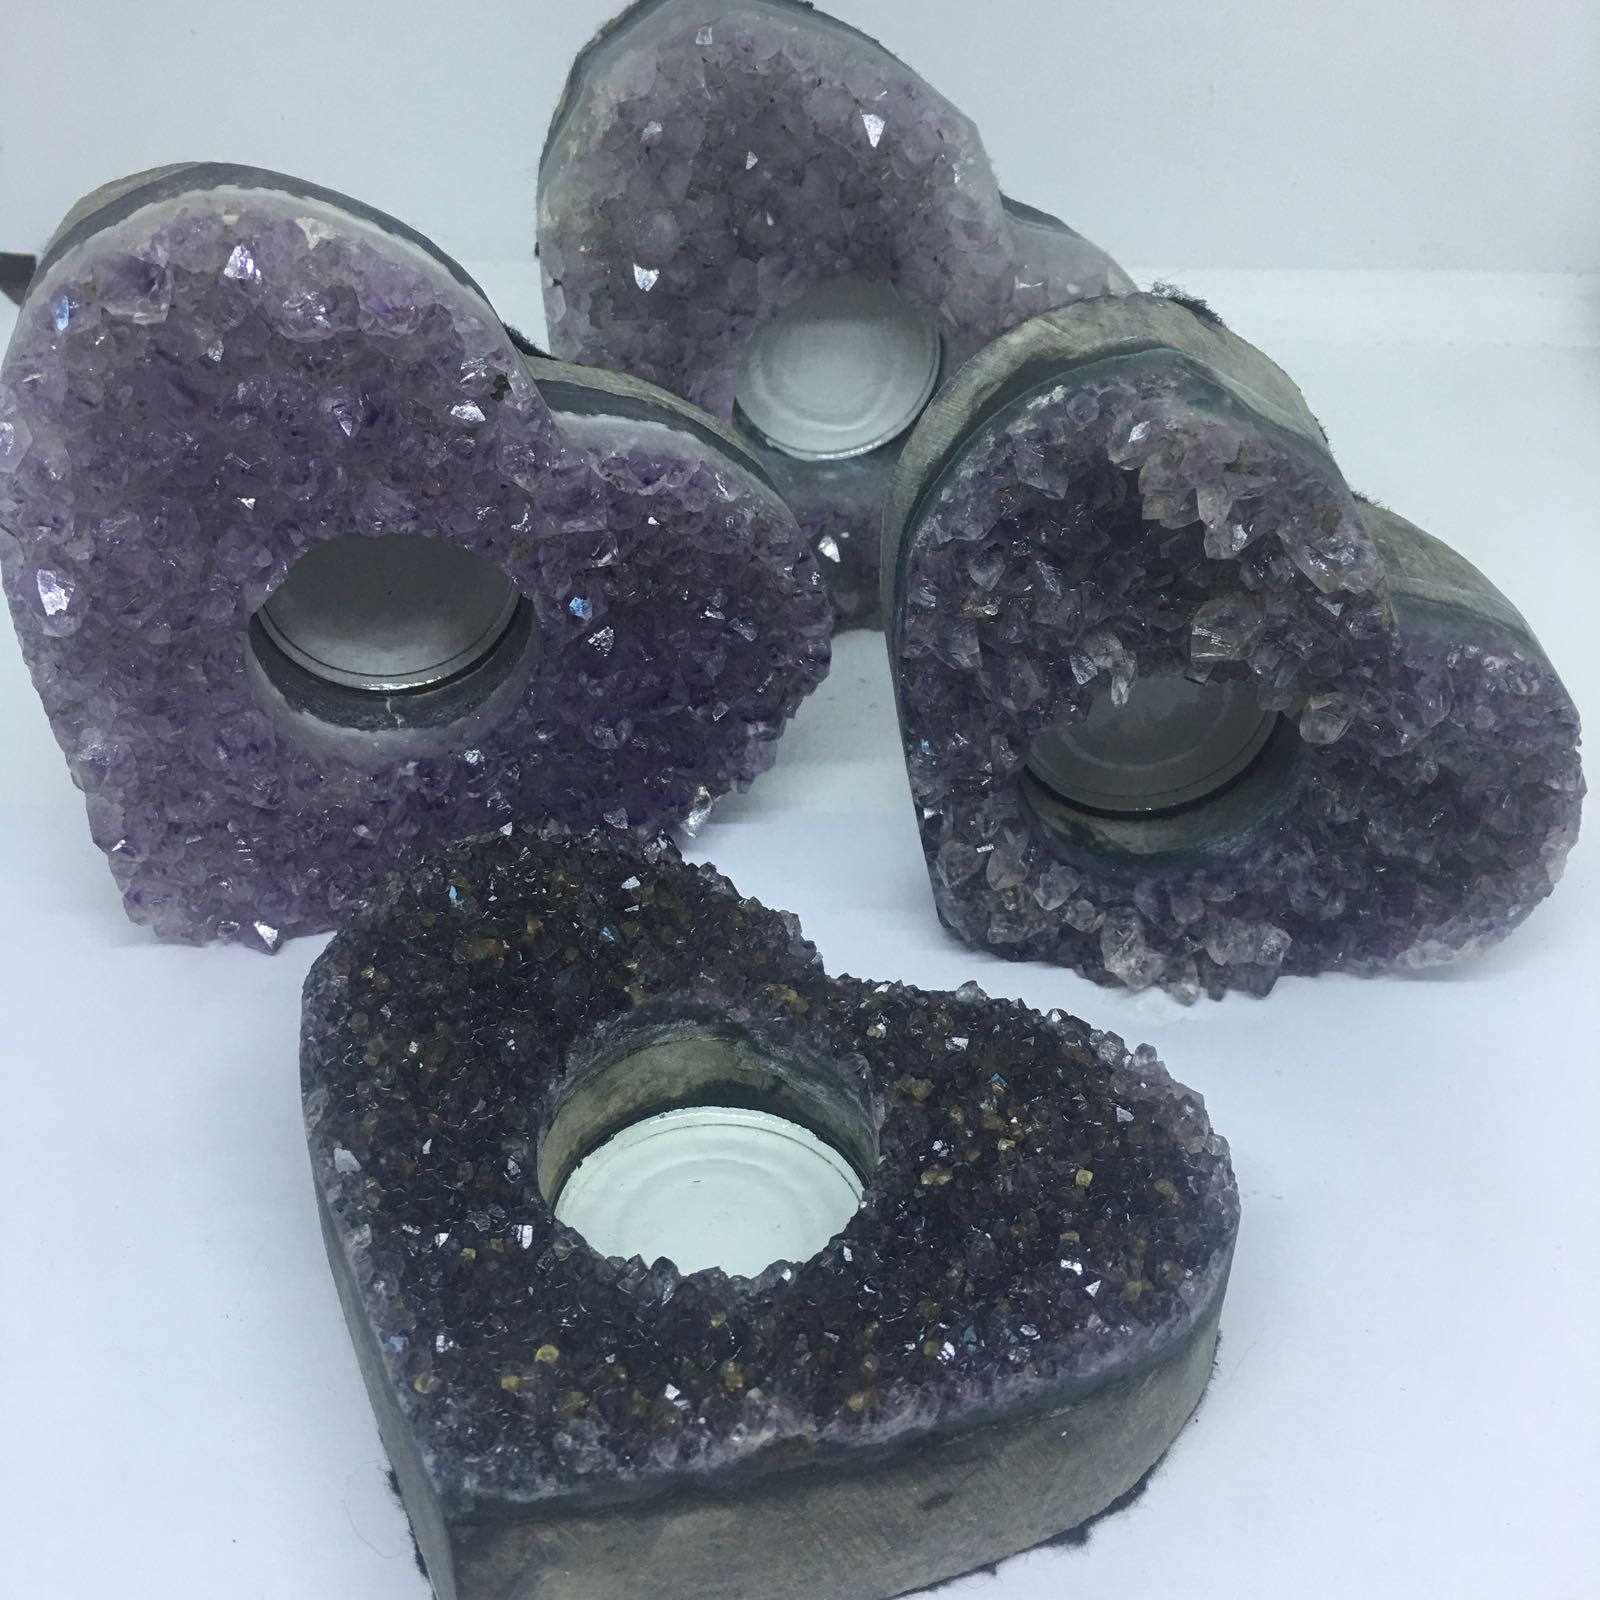 Stones from Uruguay - RAW UNPOLISHED LIGHT PURPLE AMETHYST DRUZY  HEART CANDLE HOLDER  TEALIGHT